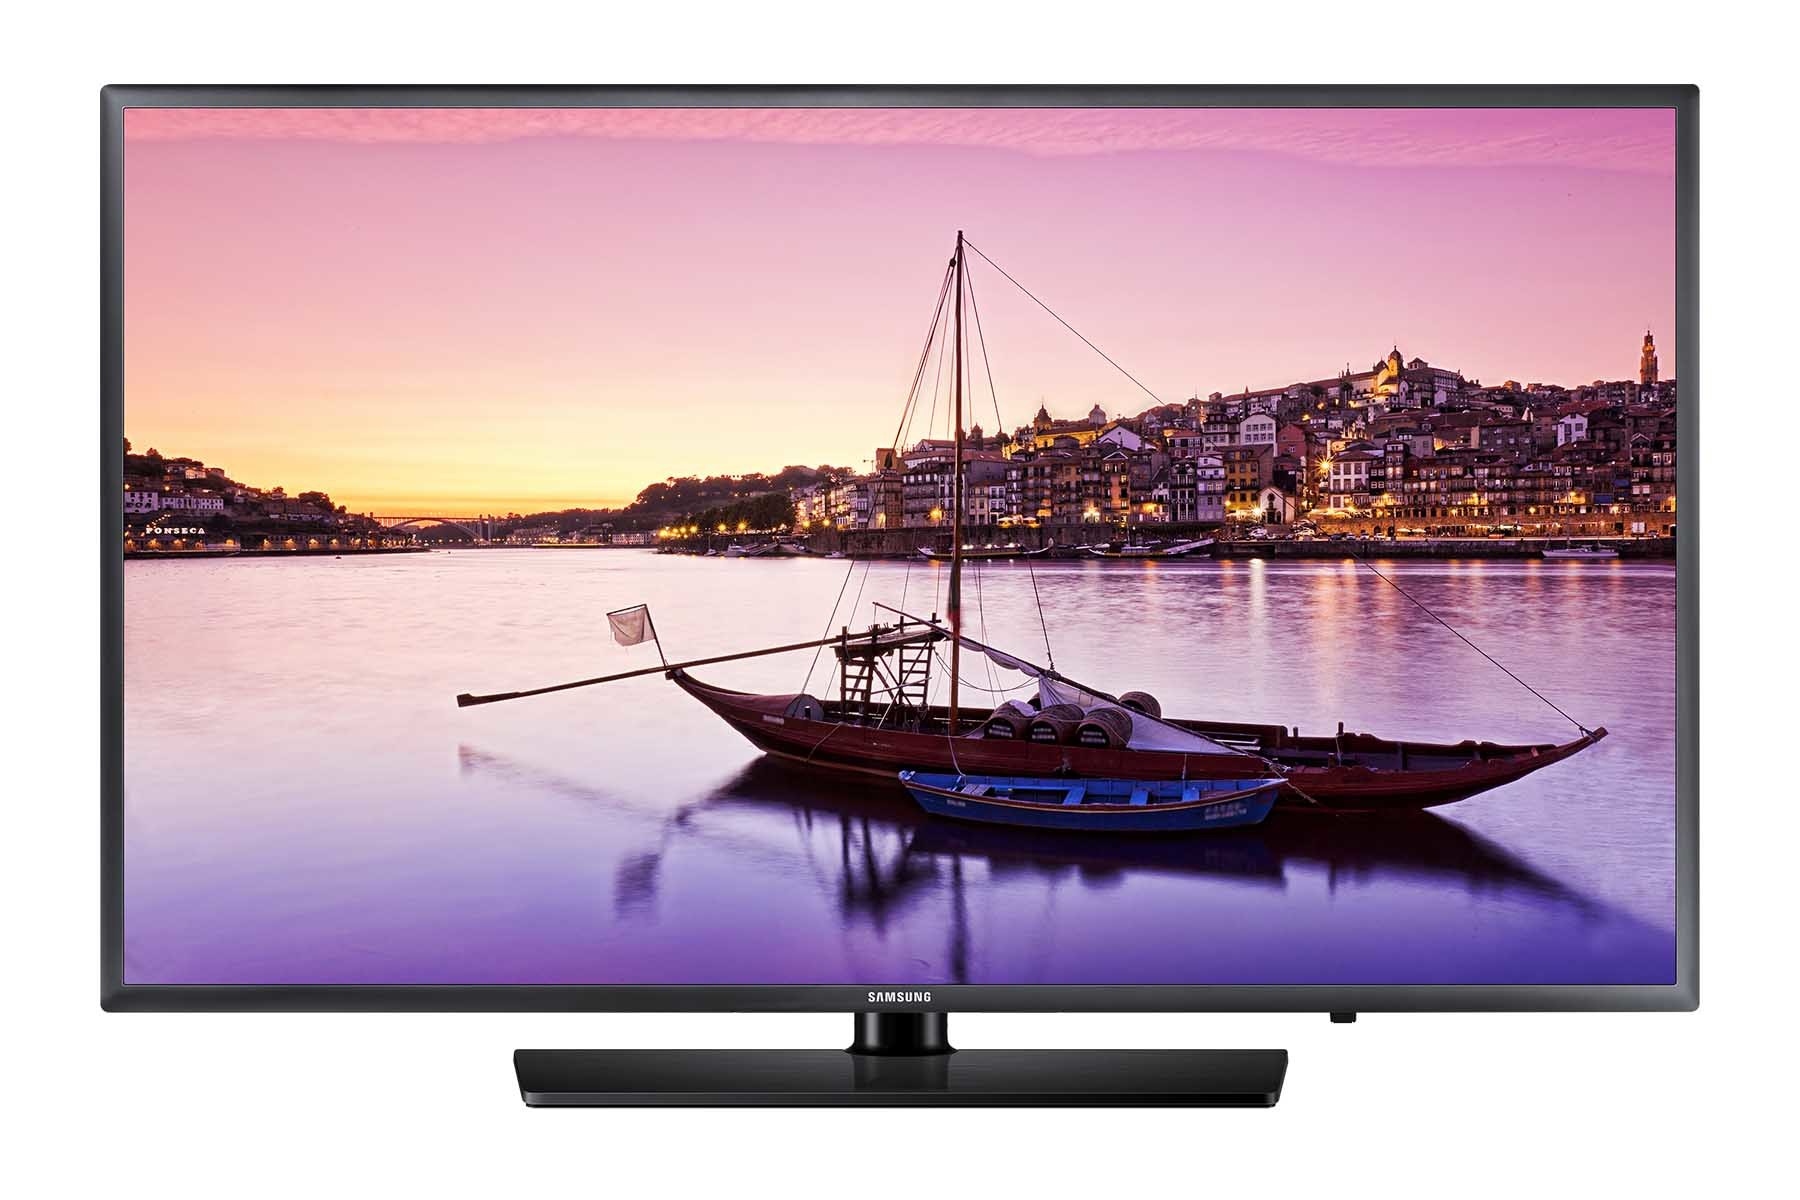 Samsung HG49EE670DKXXU 49 INCH Freeview FHD Commercial TV